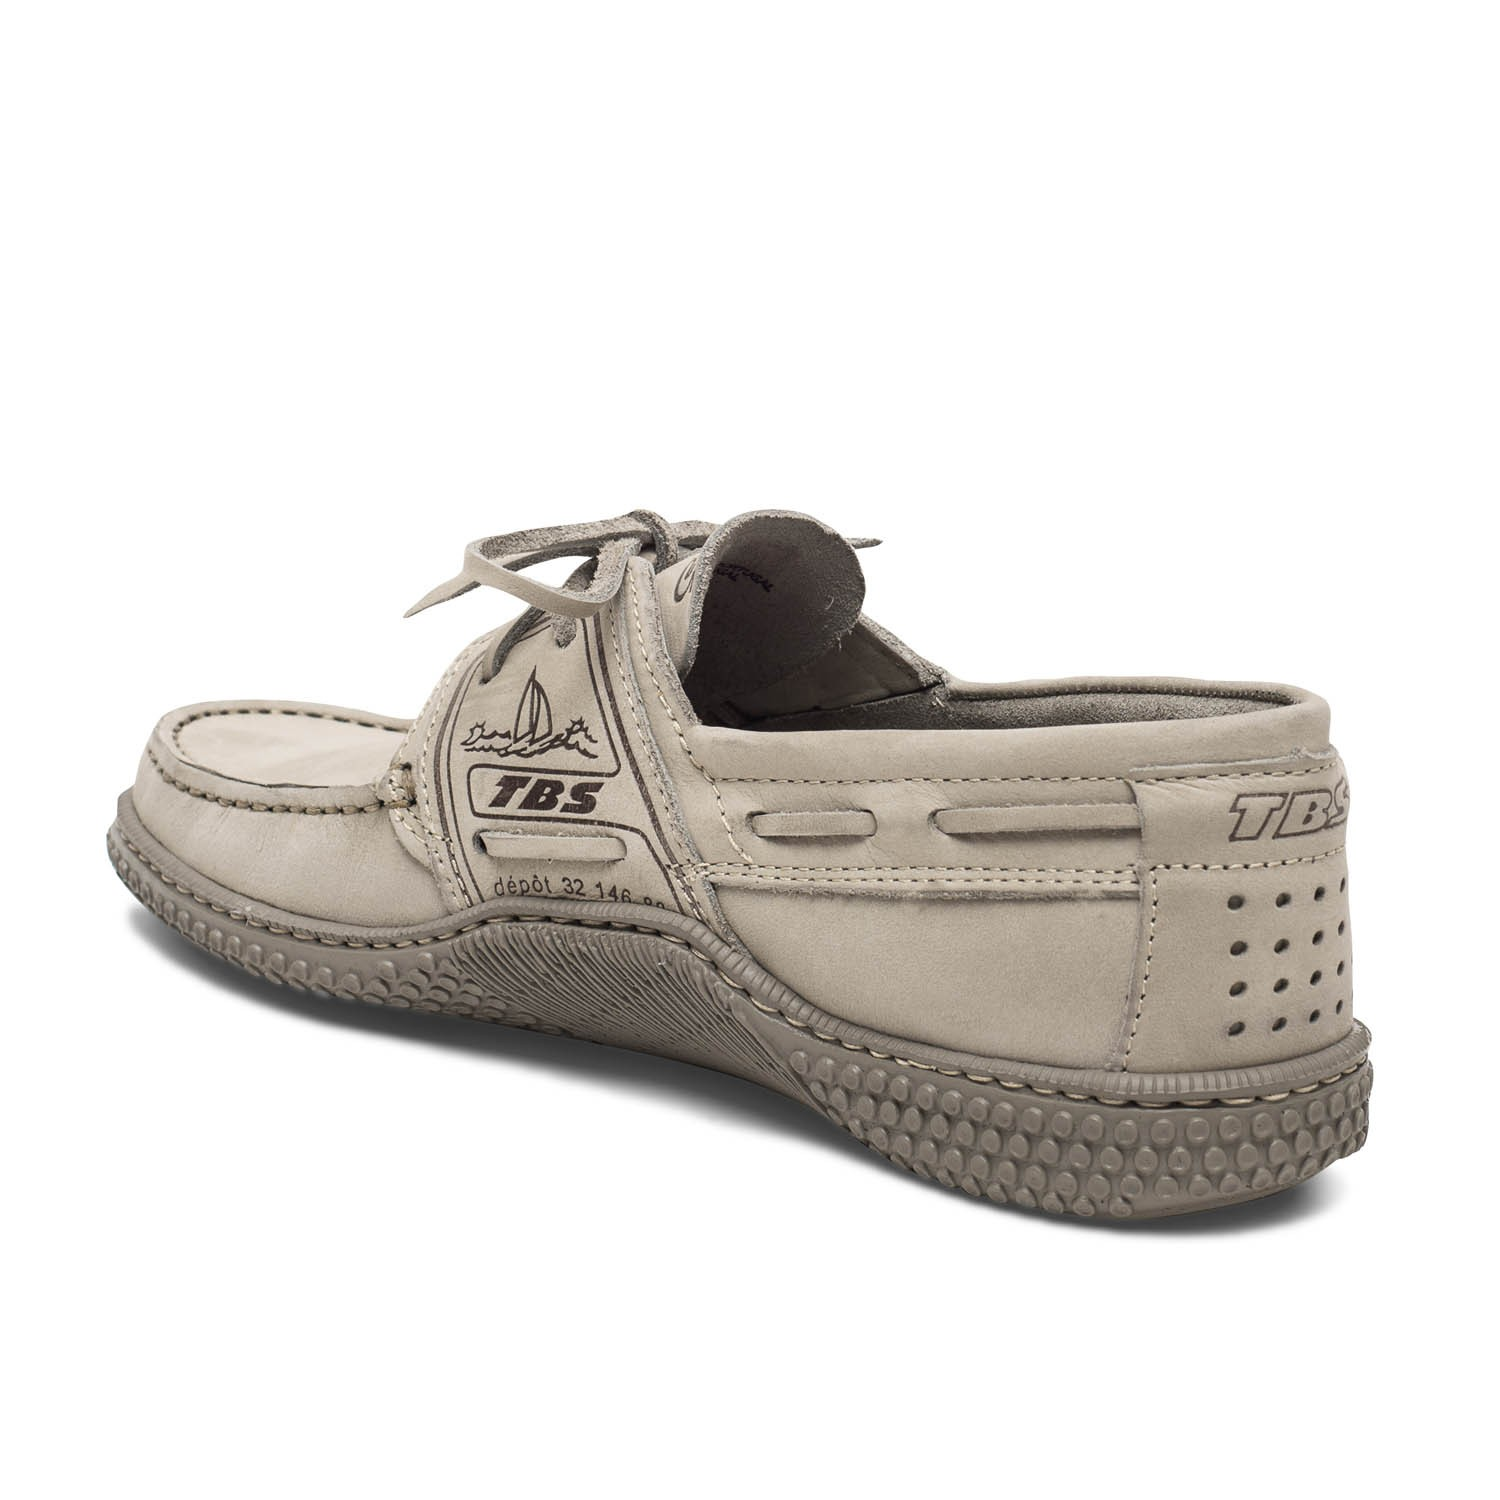 Goniox Grises Achat Bateau Tbs Cuir Chaussures y7w8xWUqzS